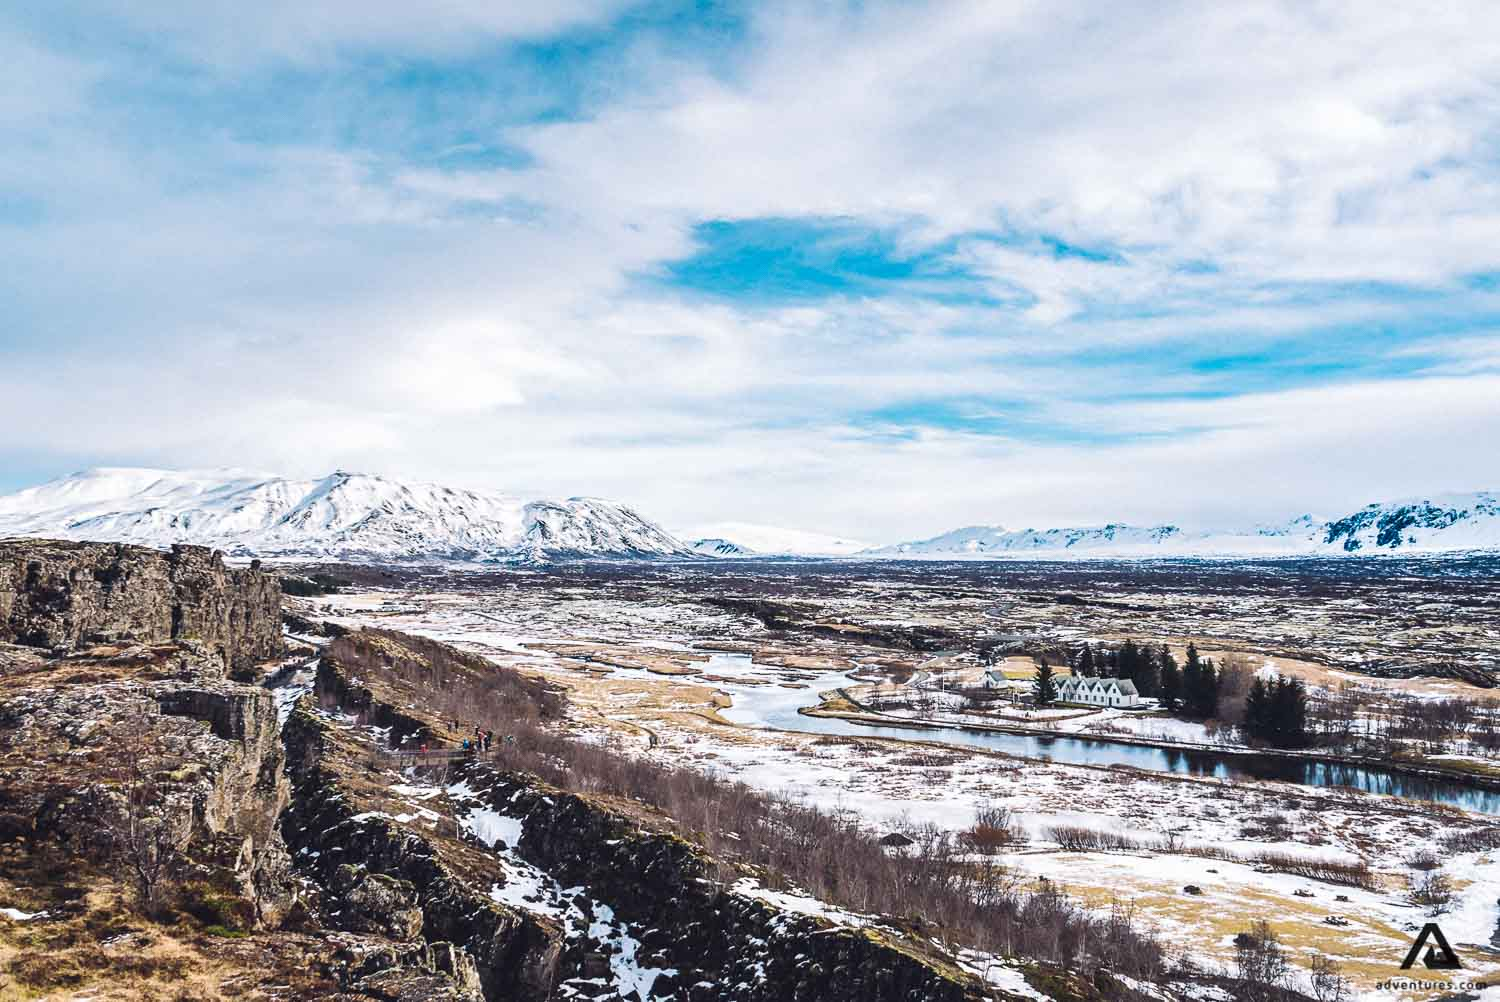 Tingvellir National Park in Iceland